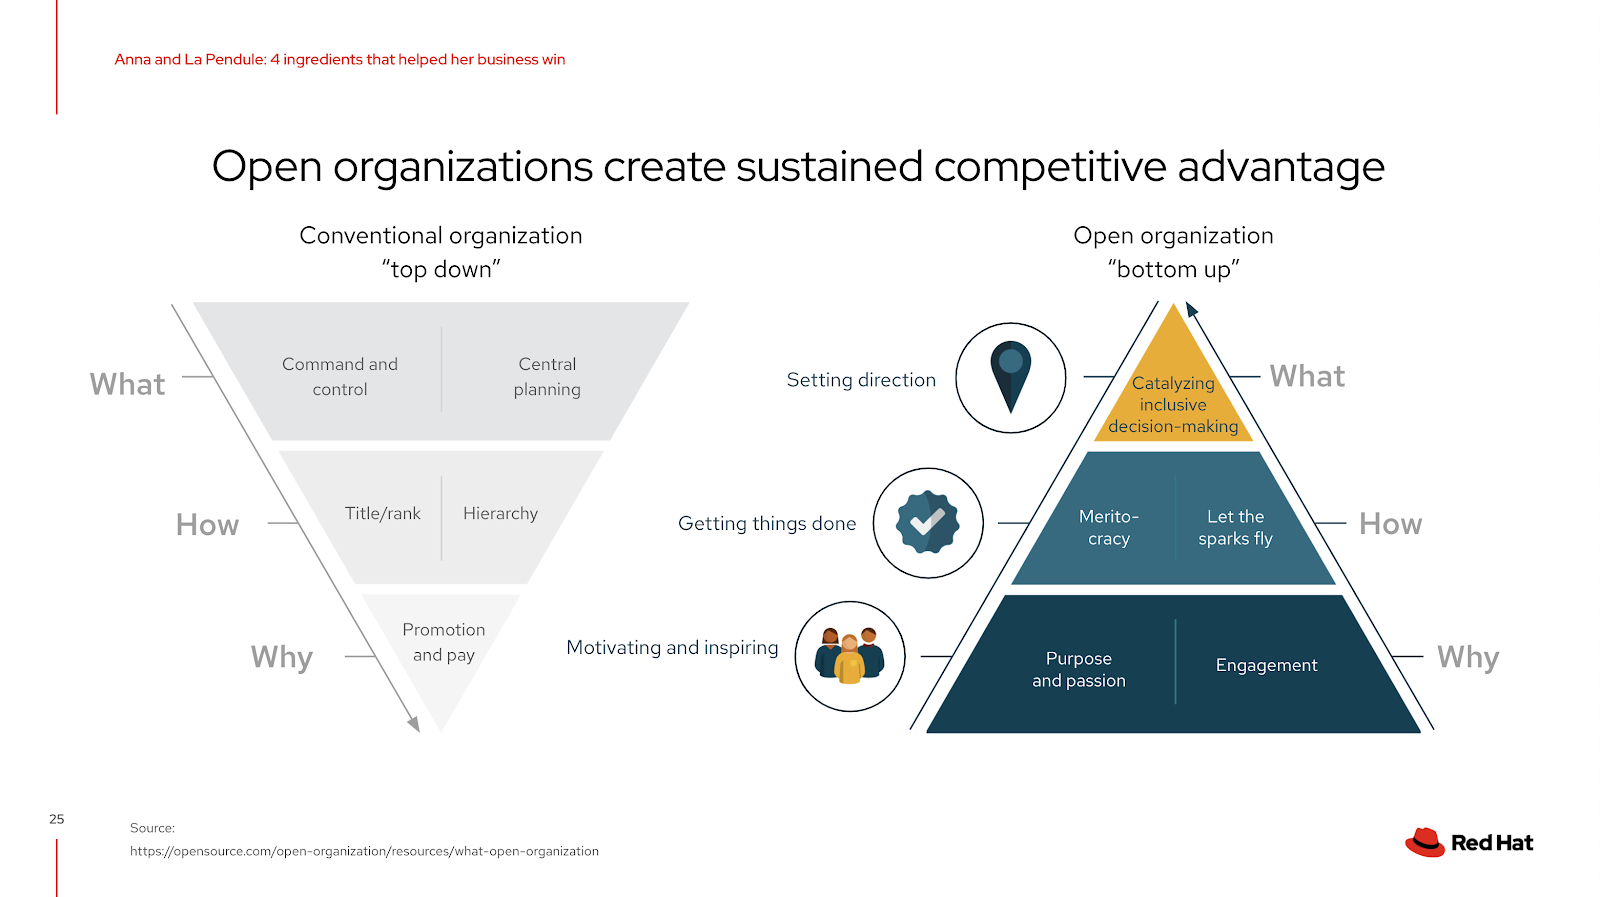 Open organizations create sustained competitive advantage